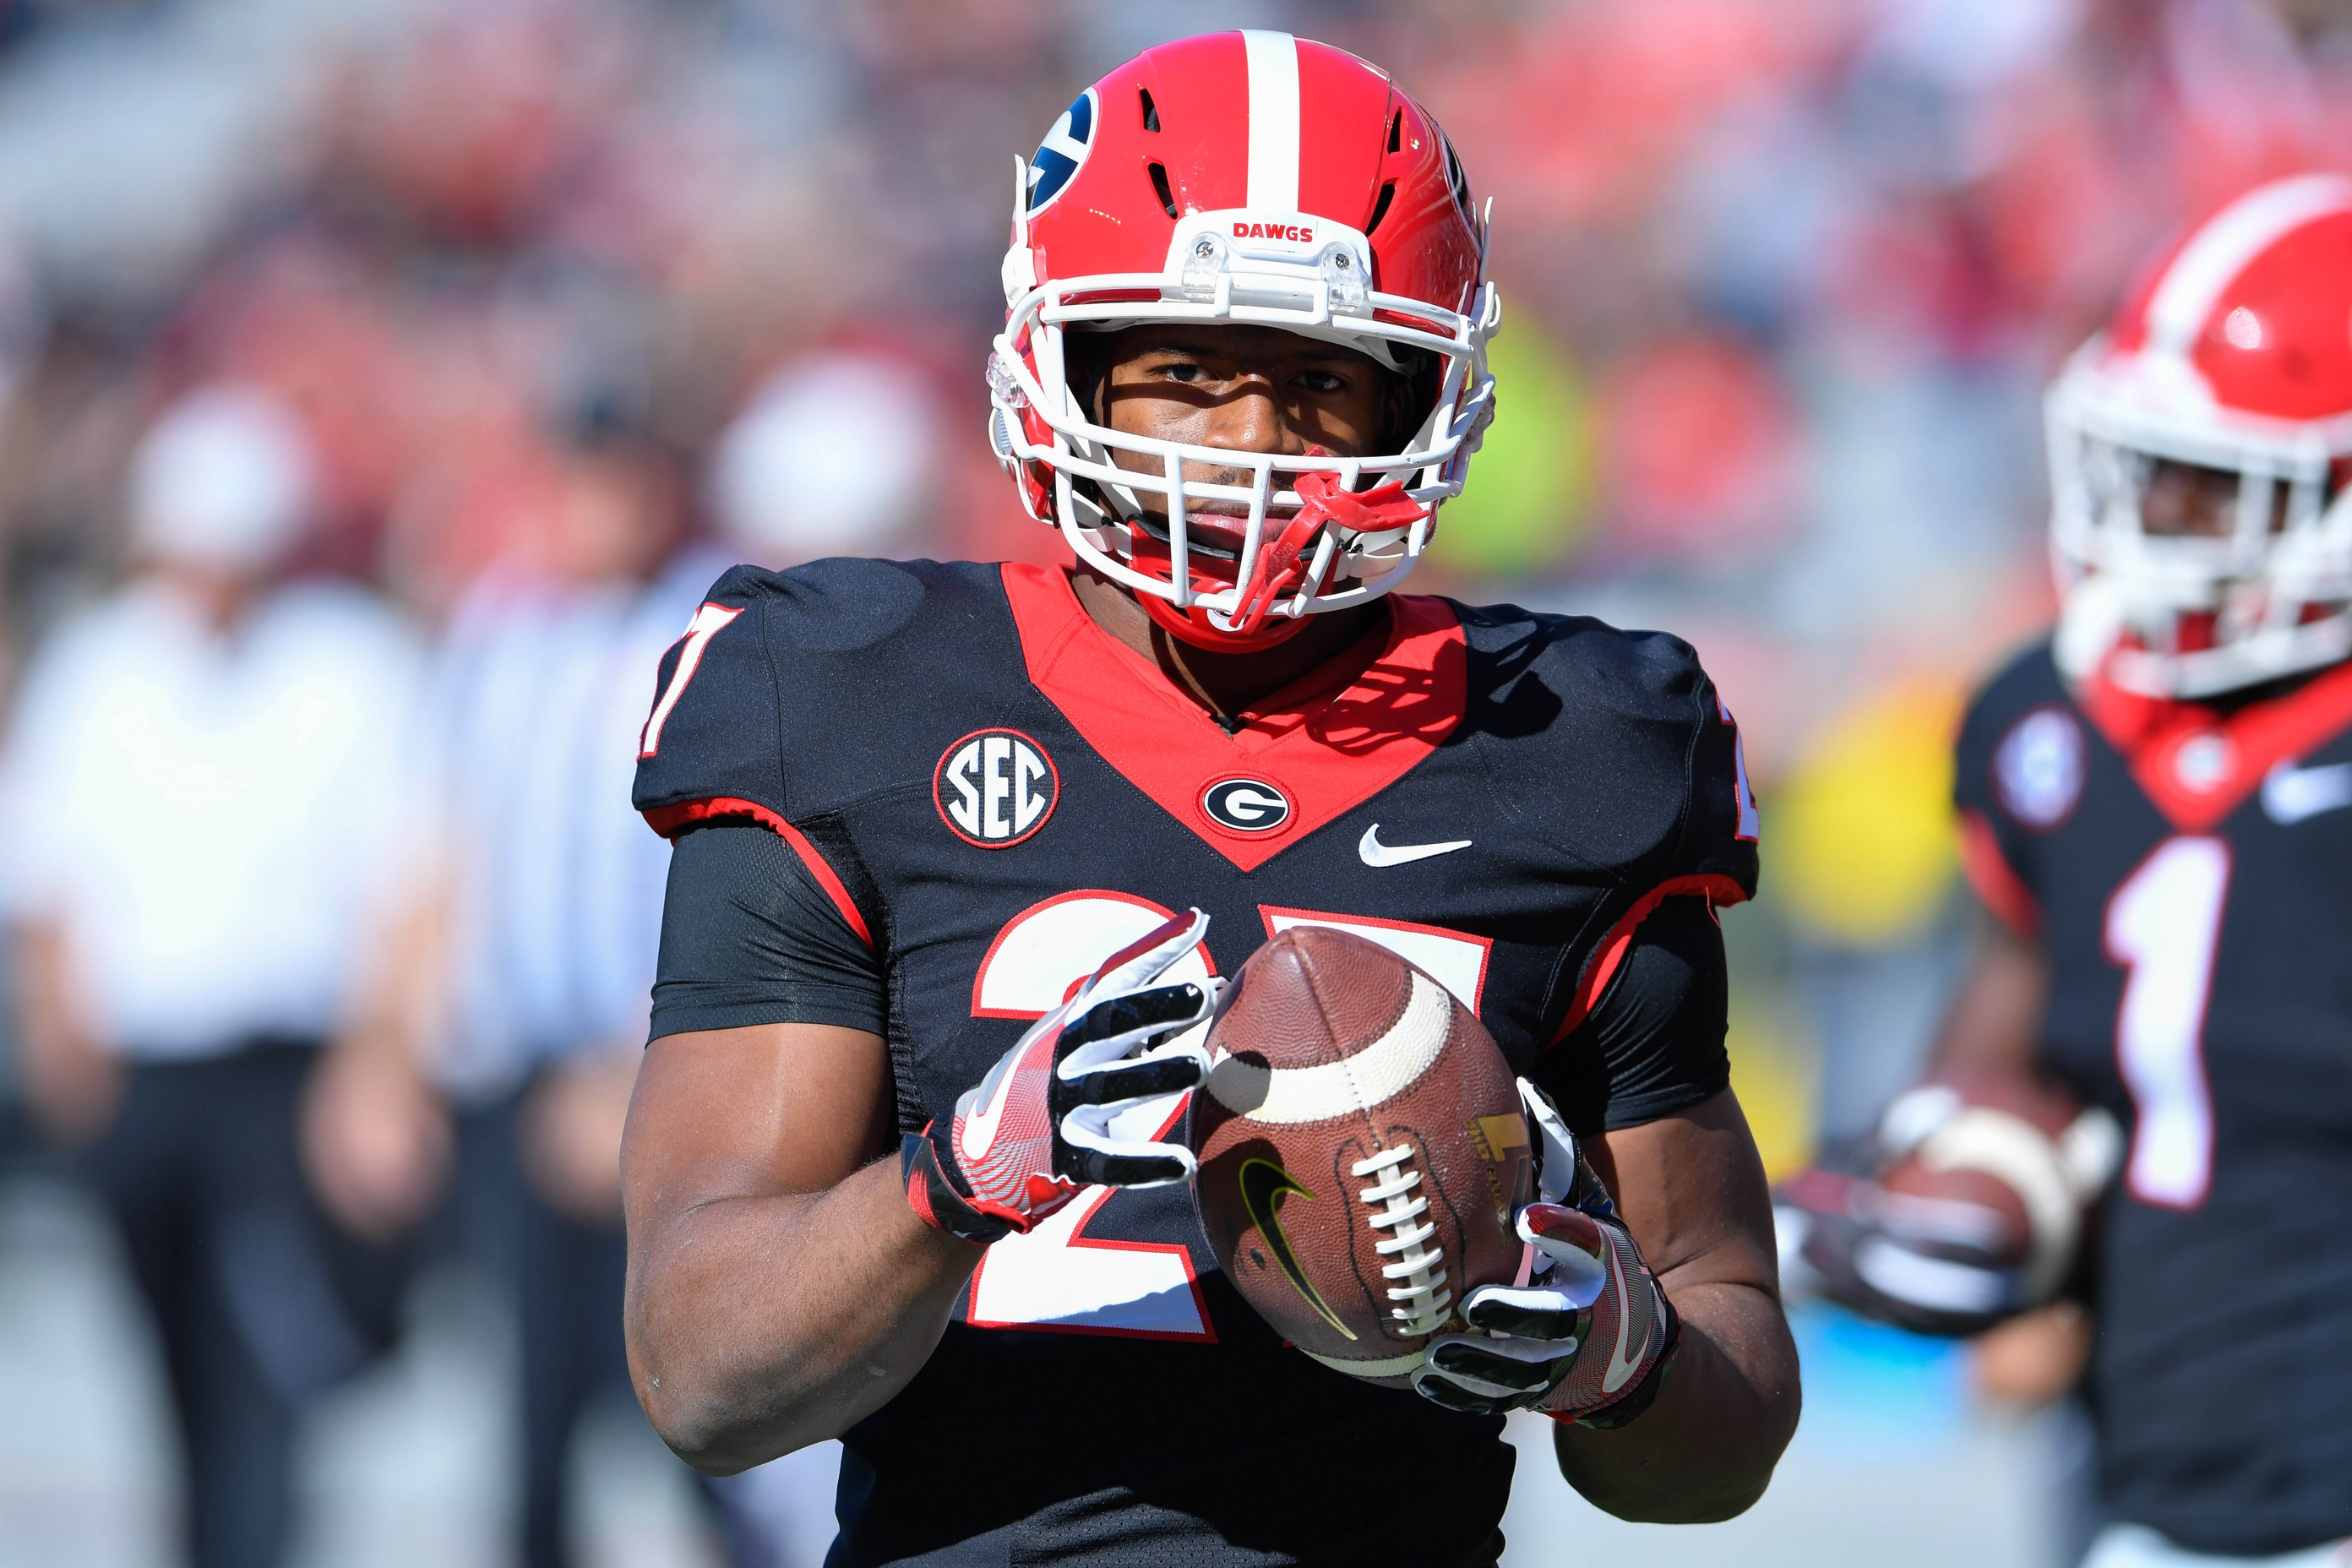 Nov 19, 2016; Athens, GA, USA; Georgia Bulldogs running back Nick Chubb (27) shown on the field before the game against the Louisiana-Lafayette Ragin Cajuns at Sanford Stadium. Mandatory Credit: Dale Zanine-USA TODAY Sports